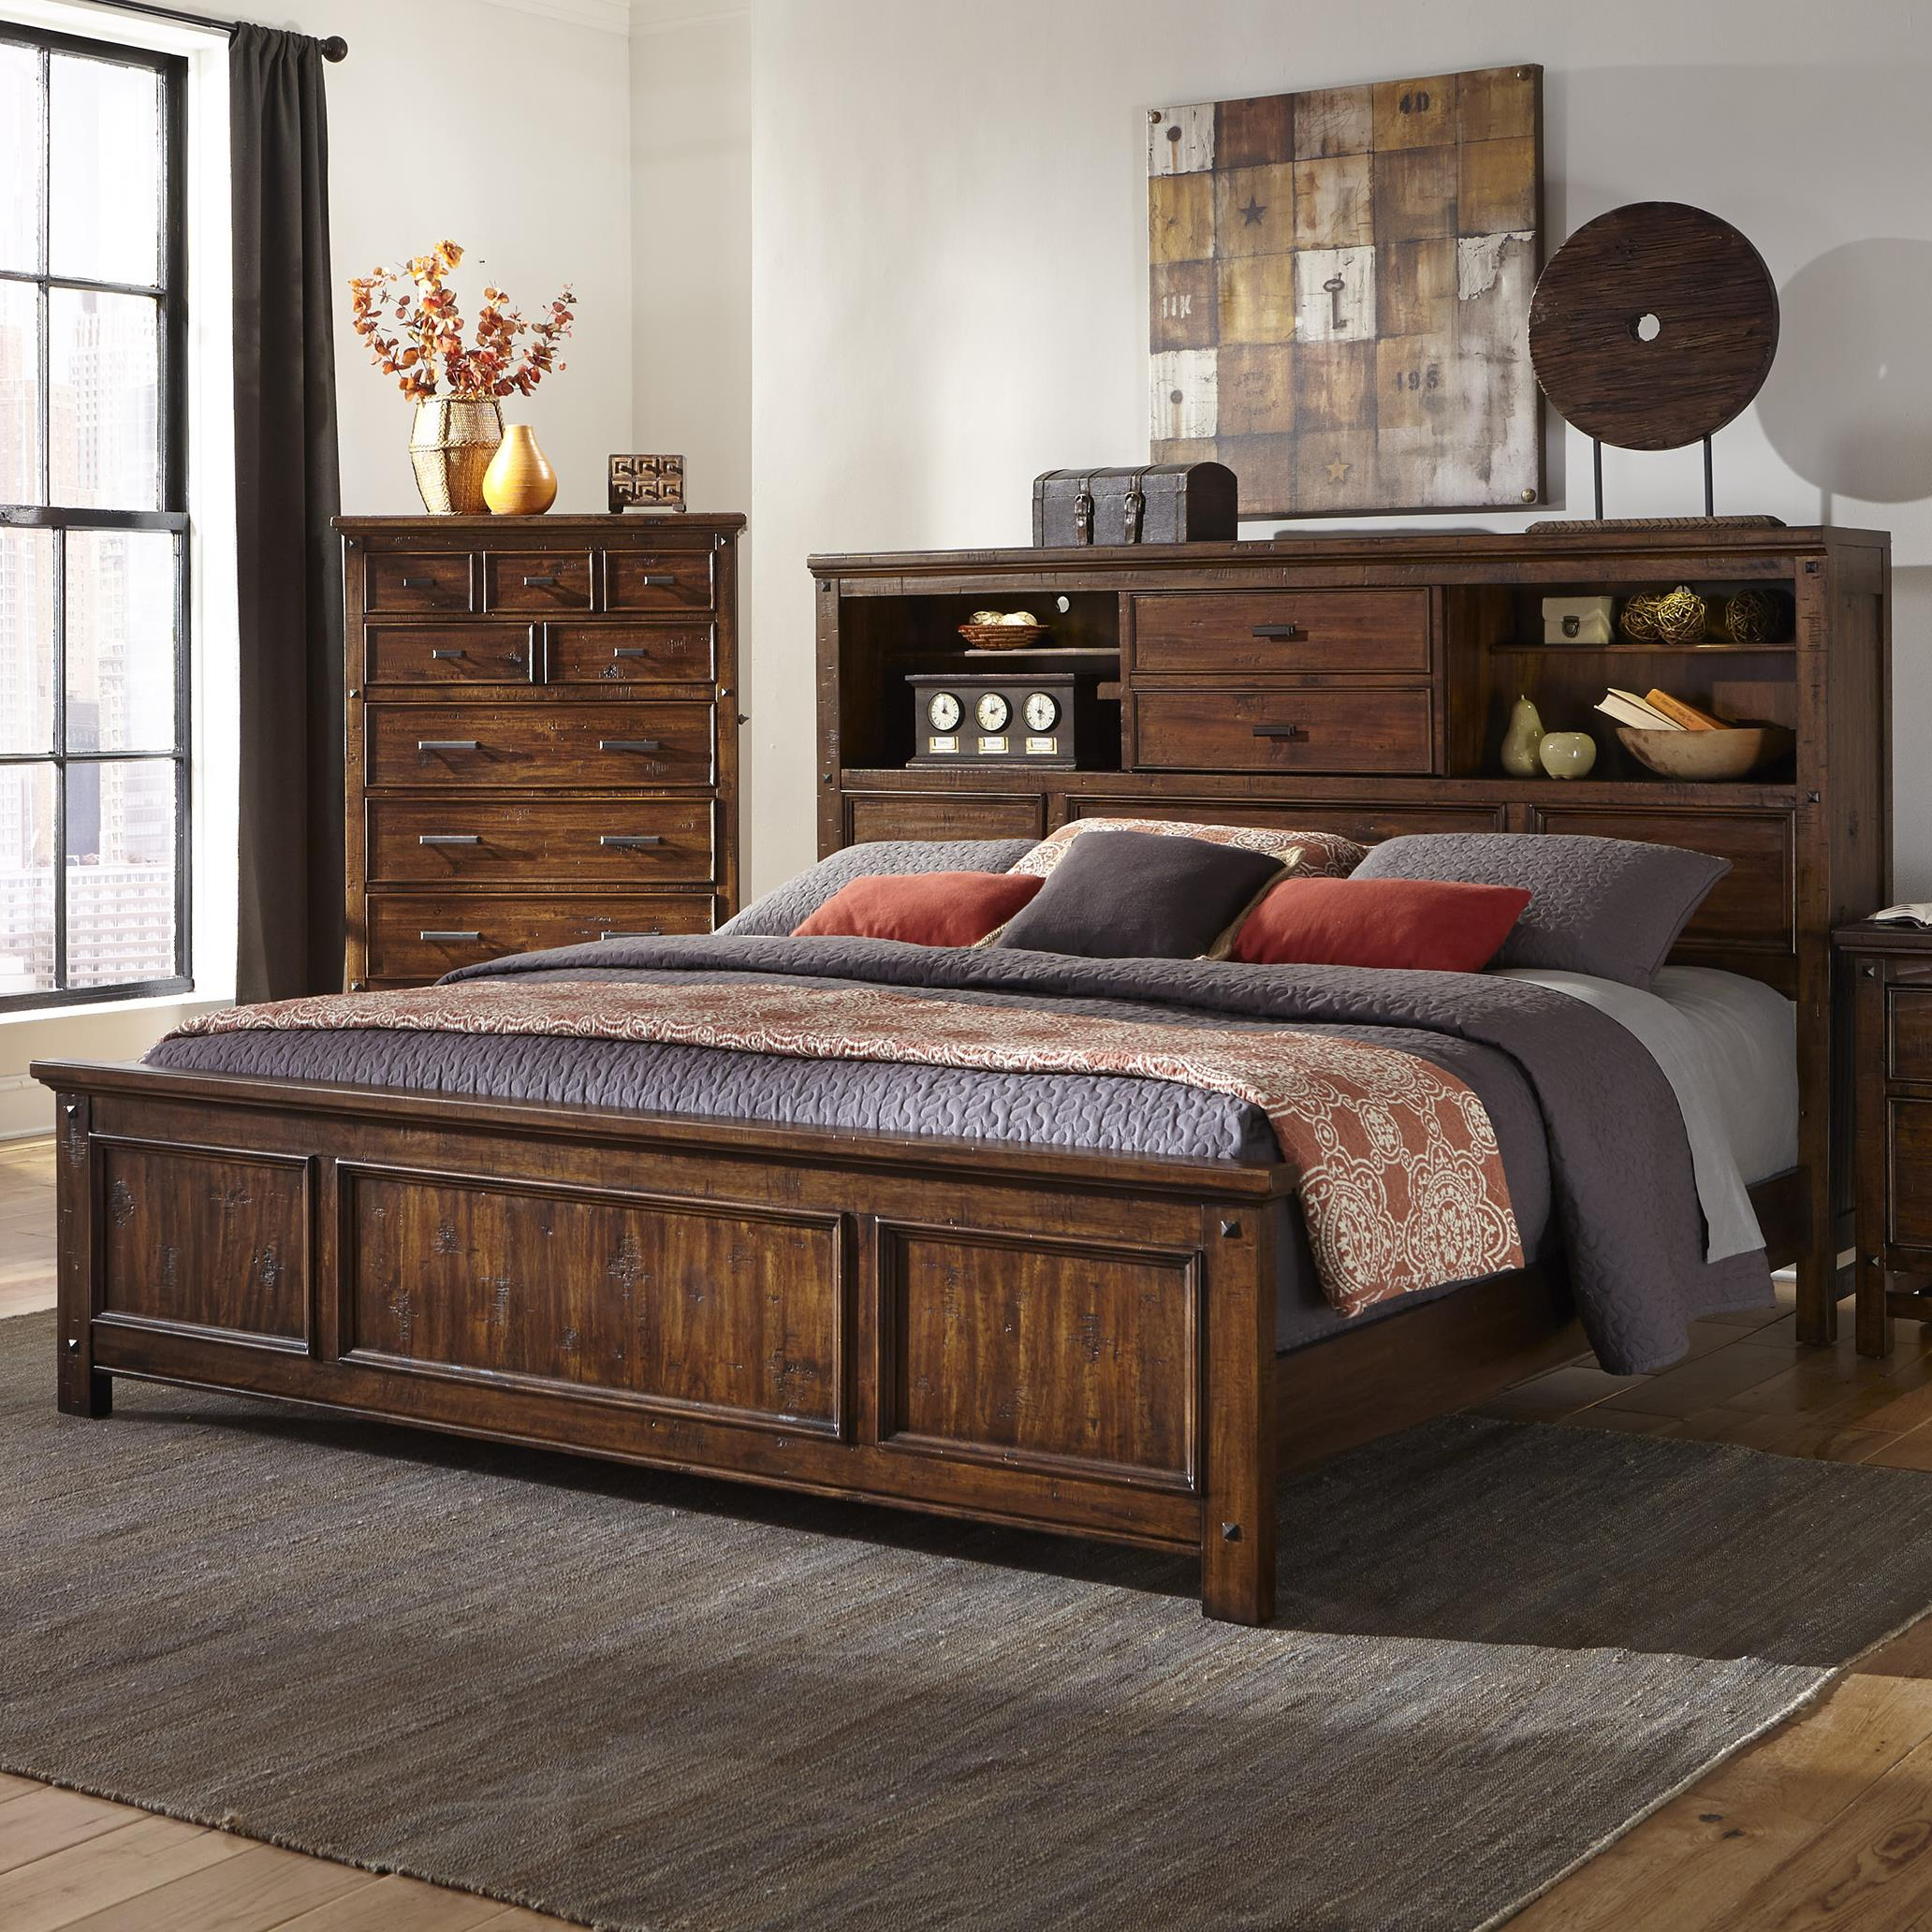 Intercon Wolf Creek Queen Bookcase Bed Fisher Home Furnishings Bookcase Beds